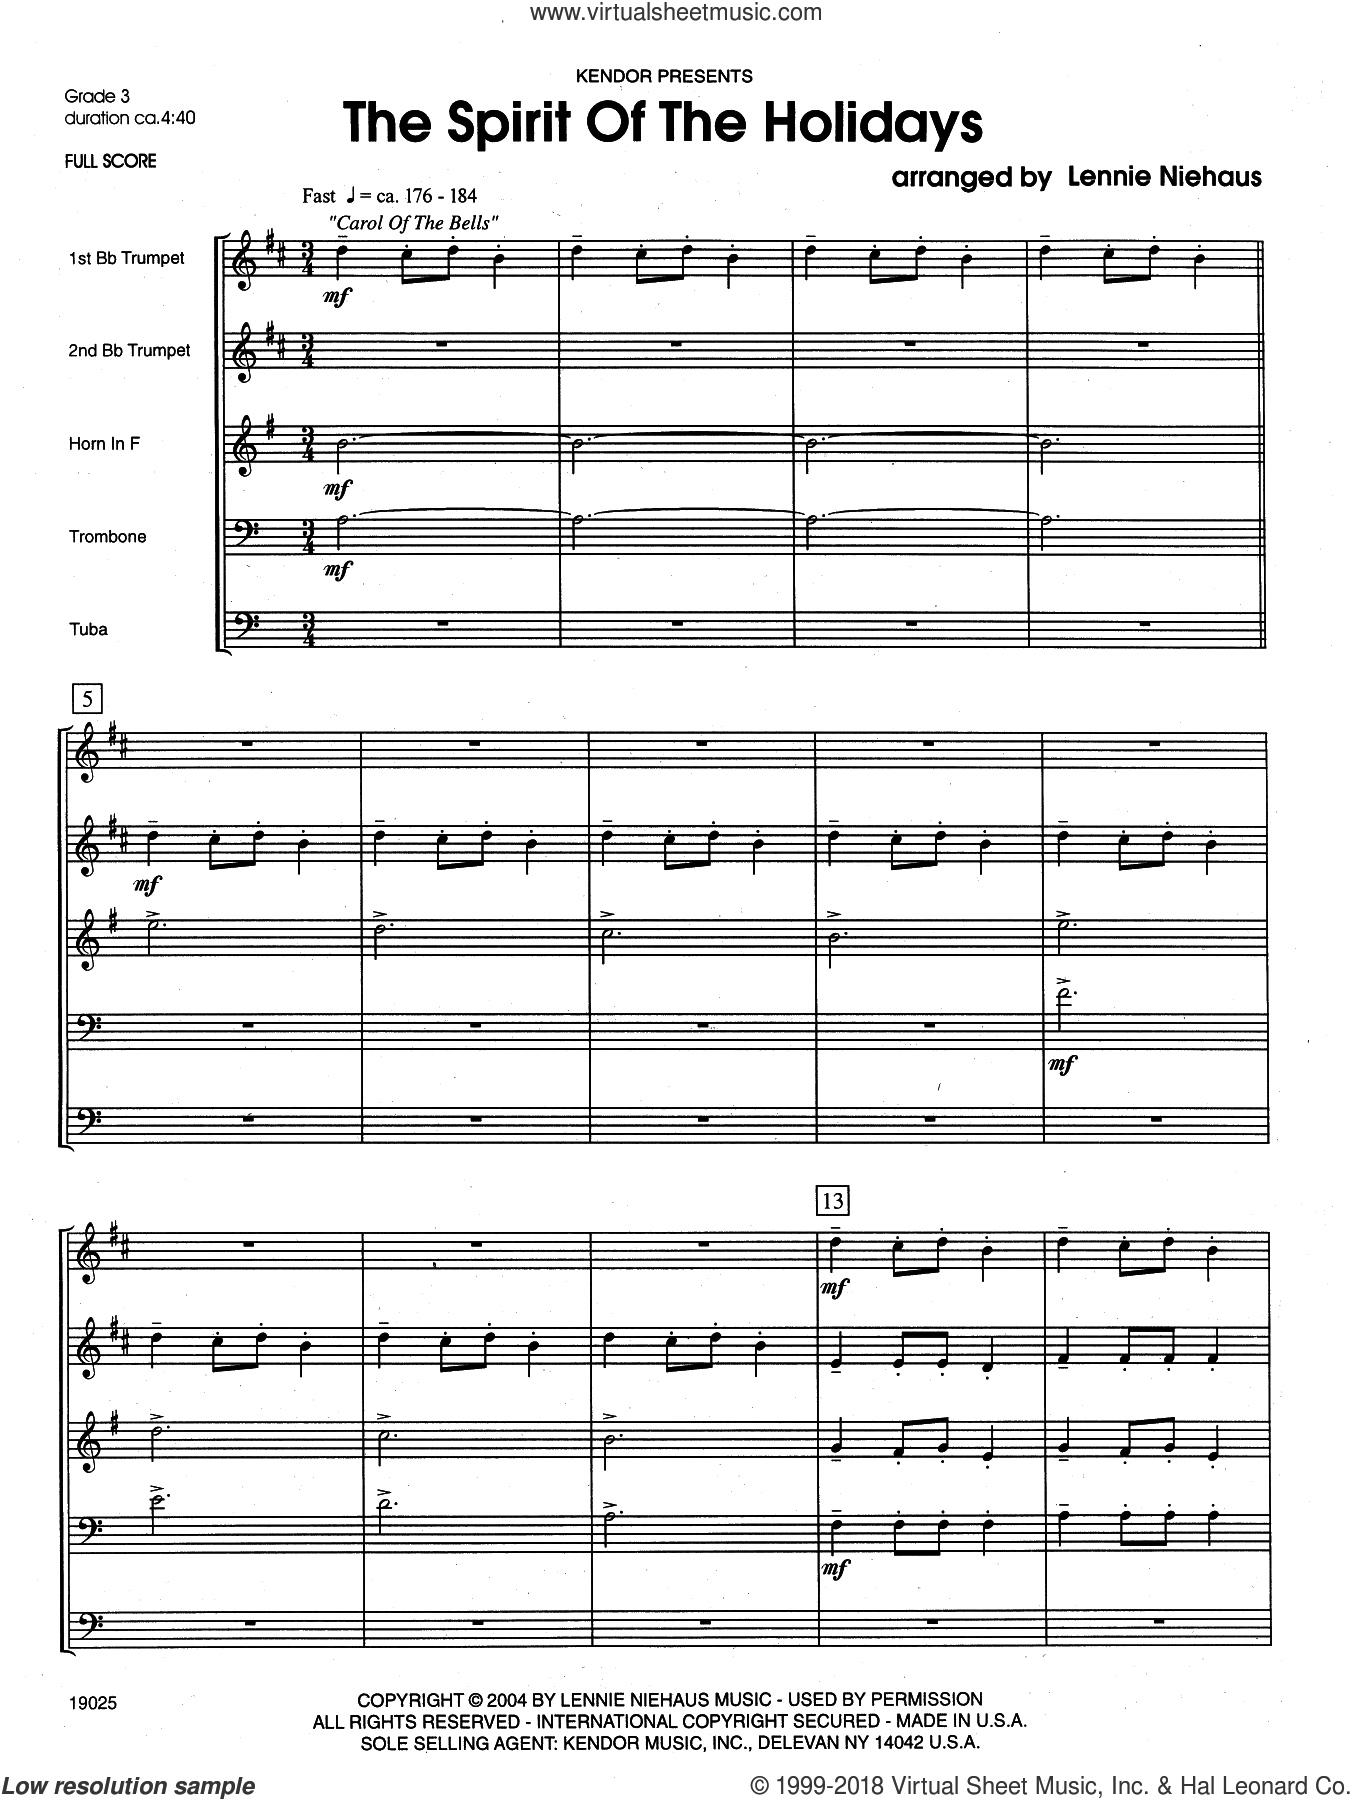 The Spirit Of The Holidays (COMPLETE) sheet music for brass quintet by Lennie Niehaus, Christmas carol score, intermediate brass quintet. Score Image Preview.